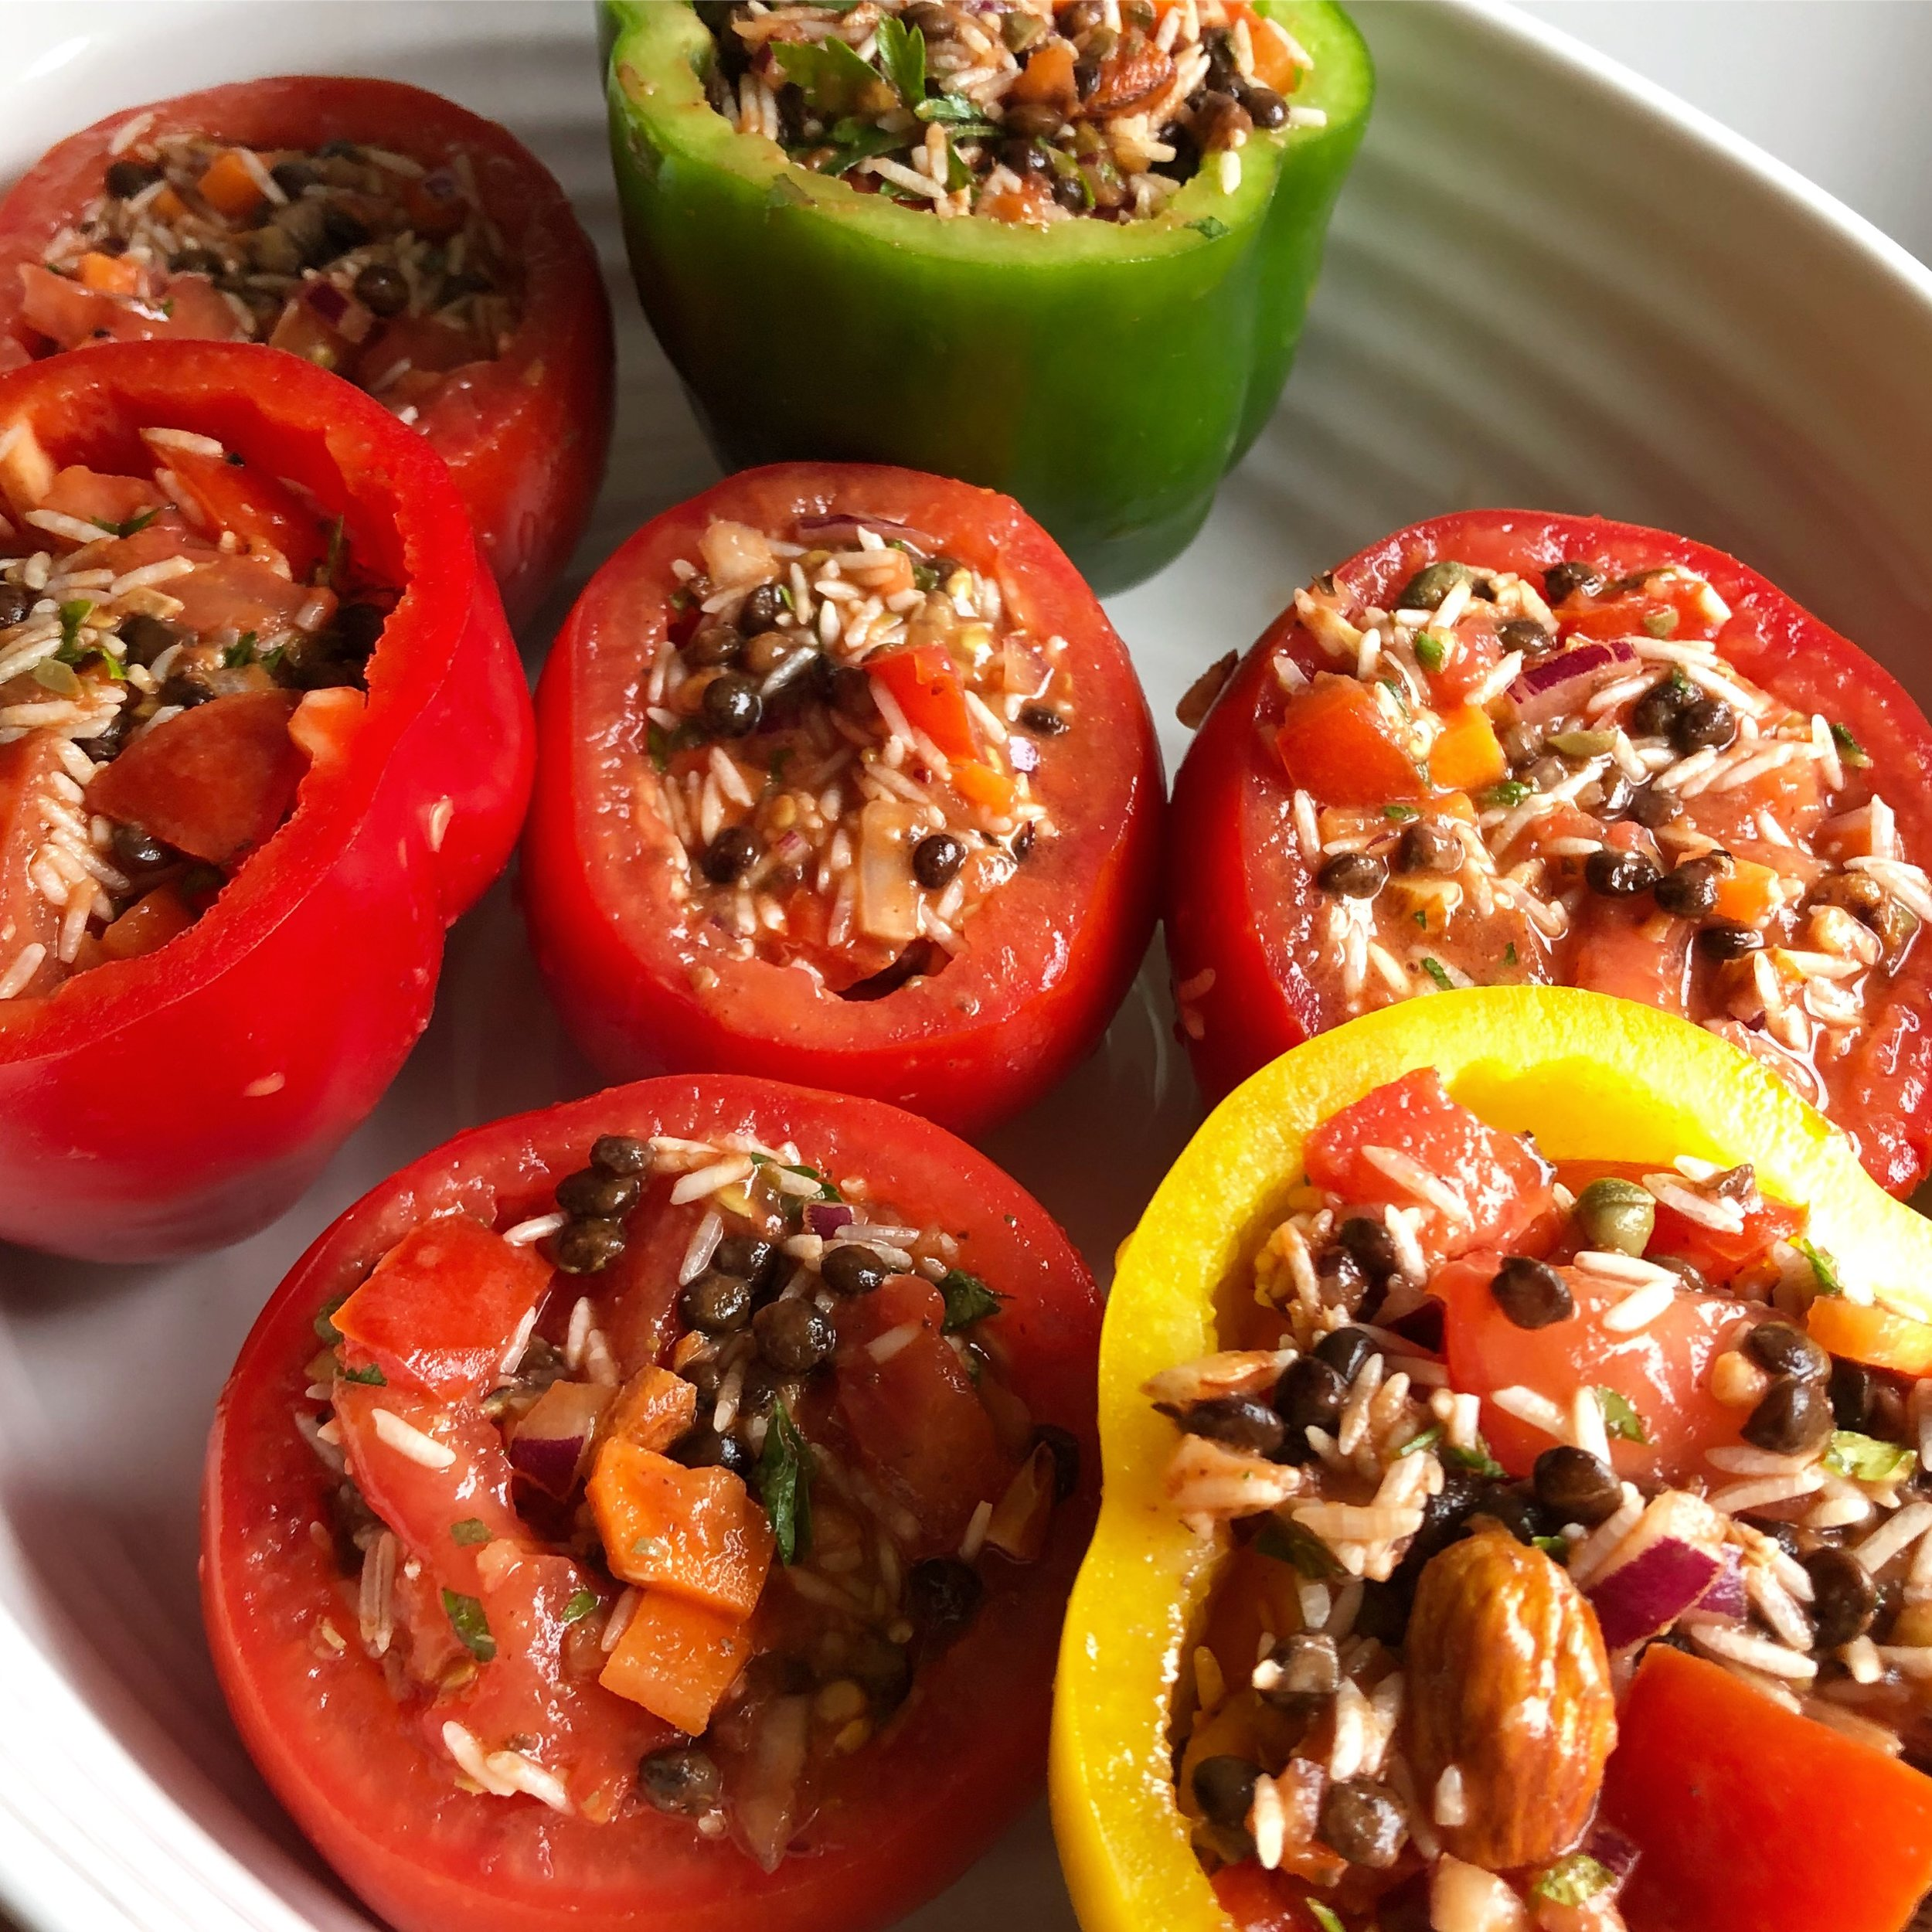 vegan gemista recipe greek stuffed peppers and tomatoes vegetarian rice lentils easy quick healthy